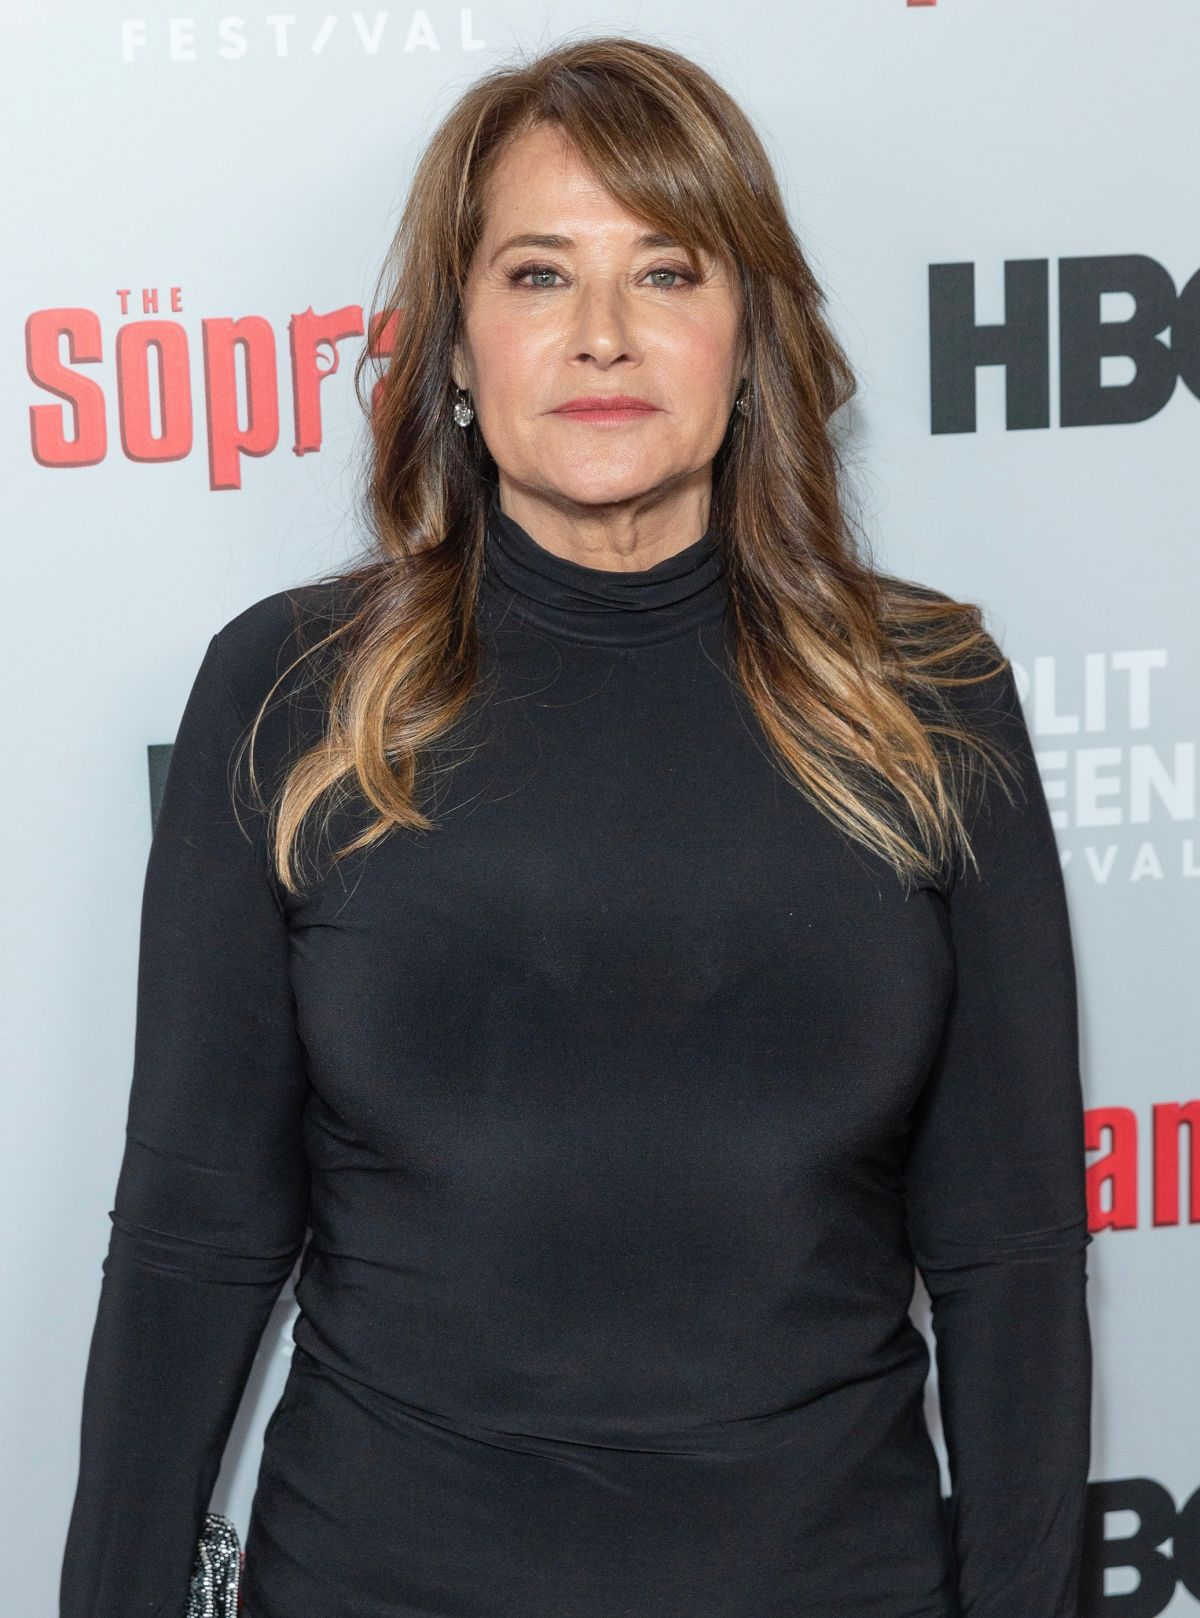 LORRAINE BRACCO at The Sopranos 20th Anniversary Panel in ...